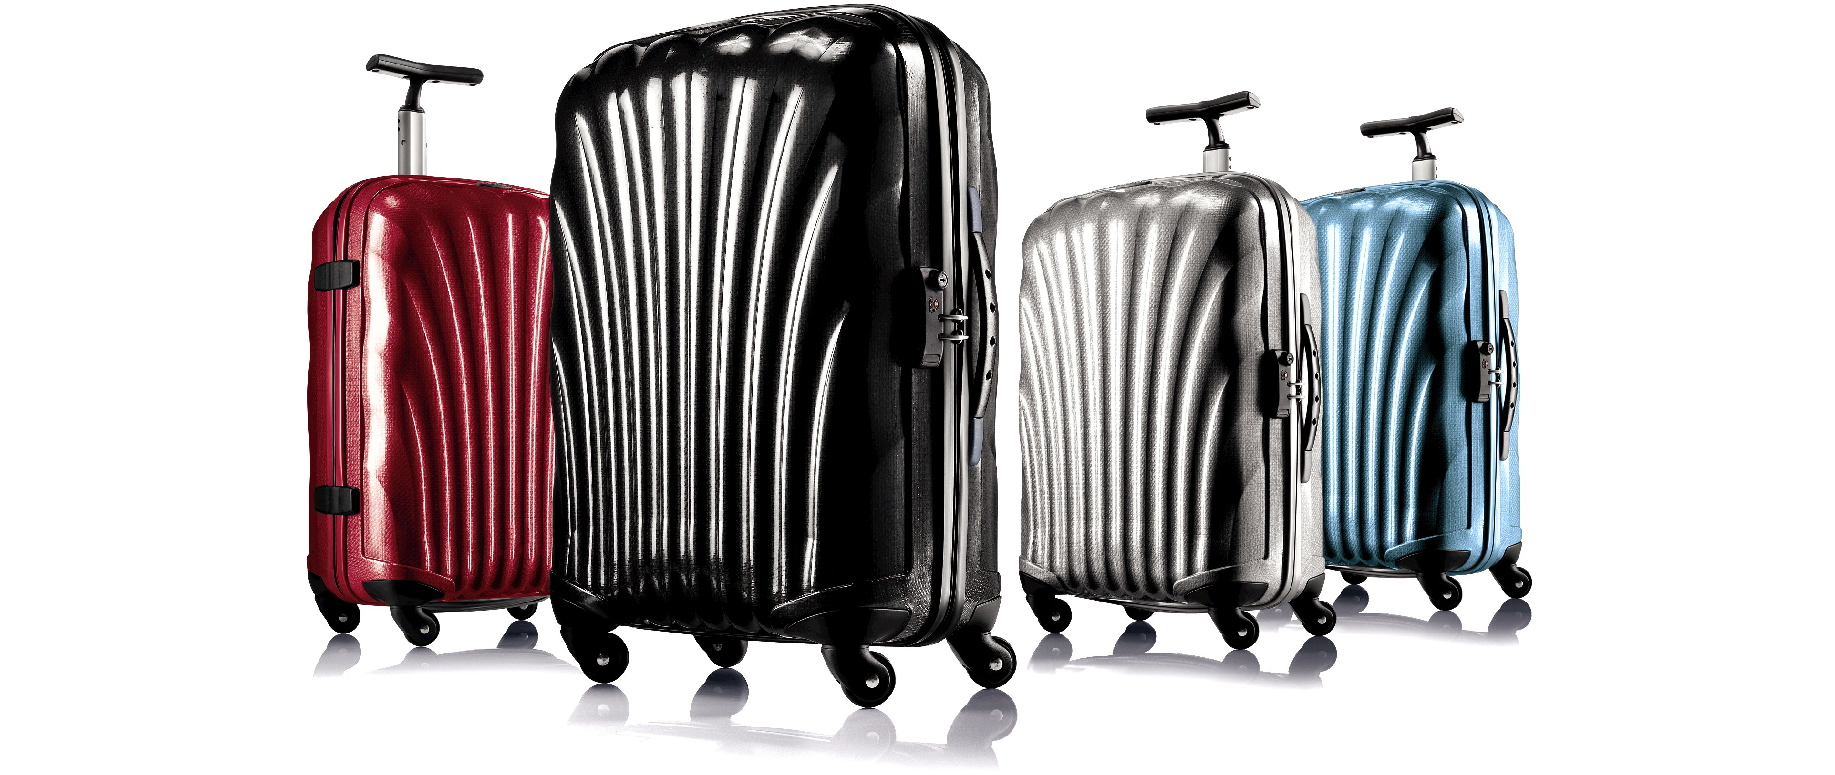 Samsonite Luggages